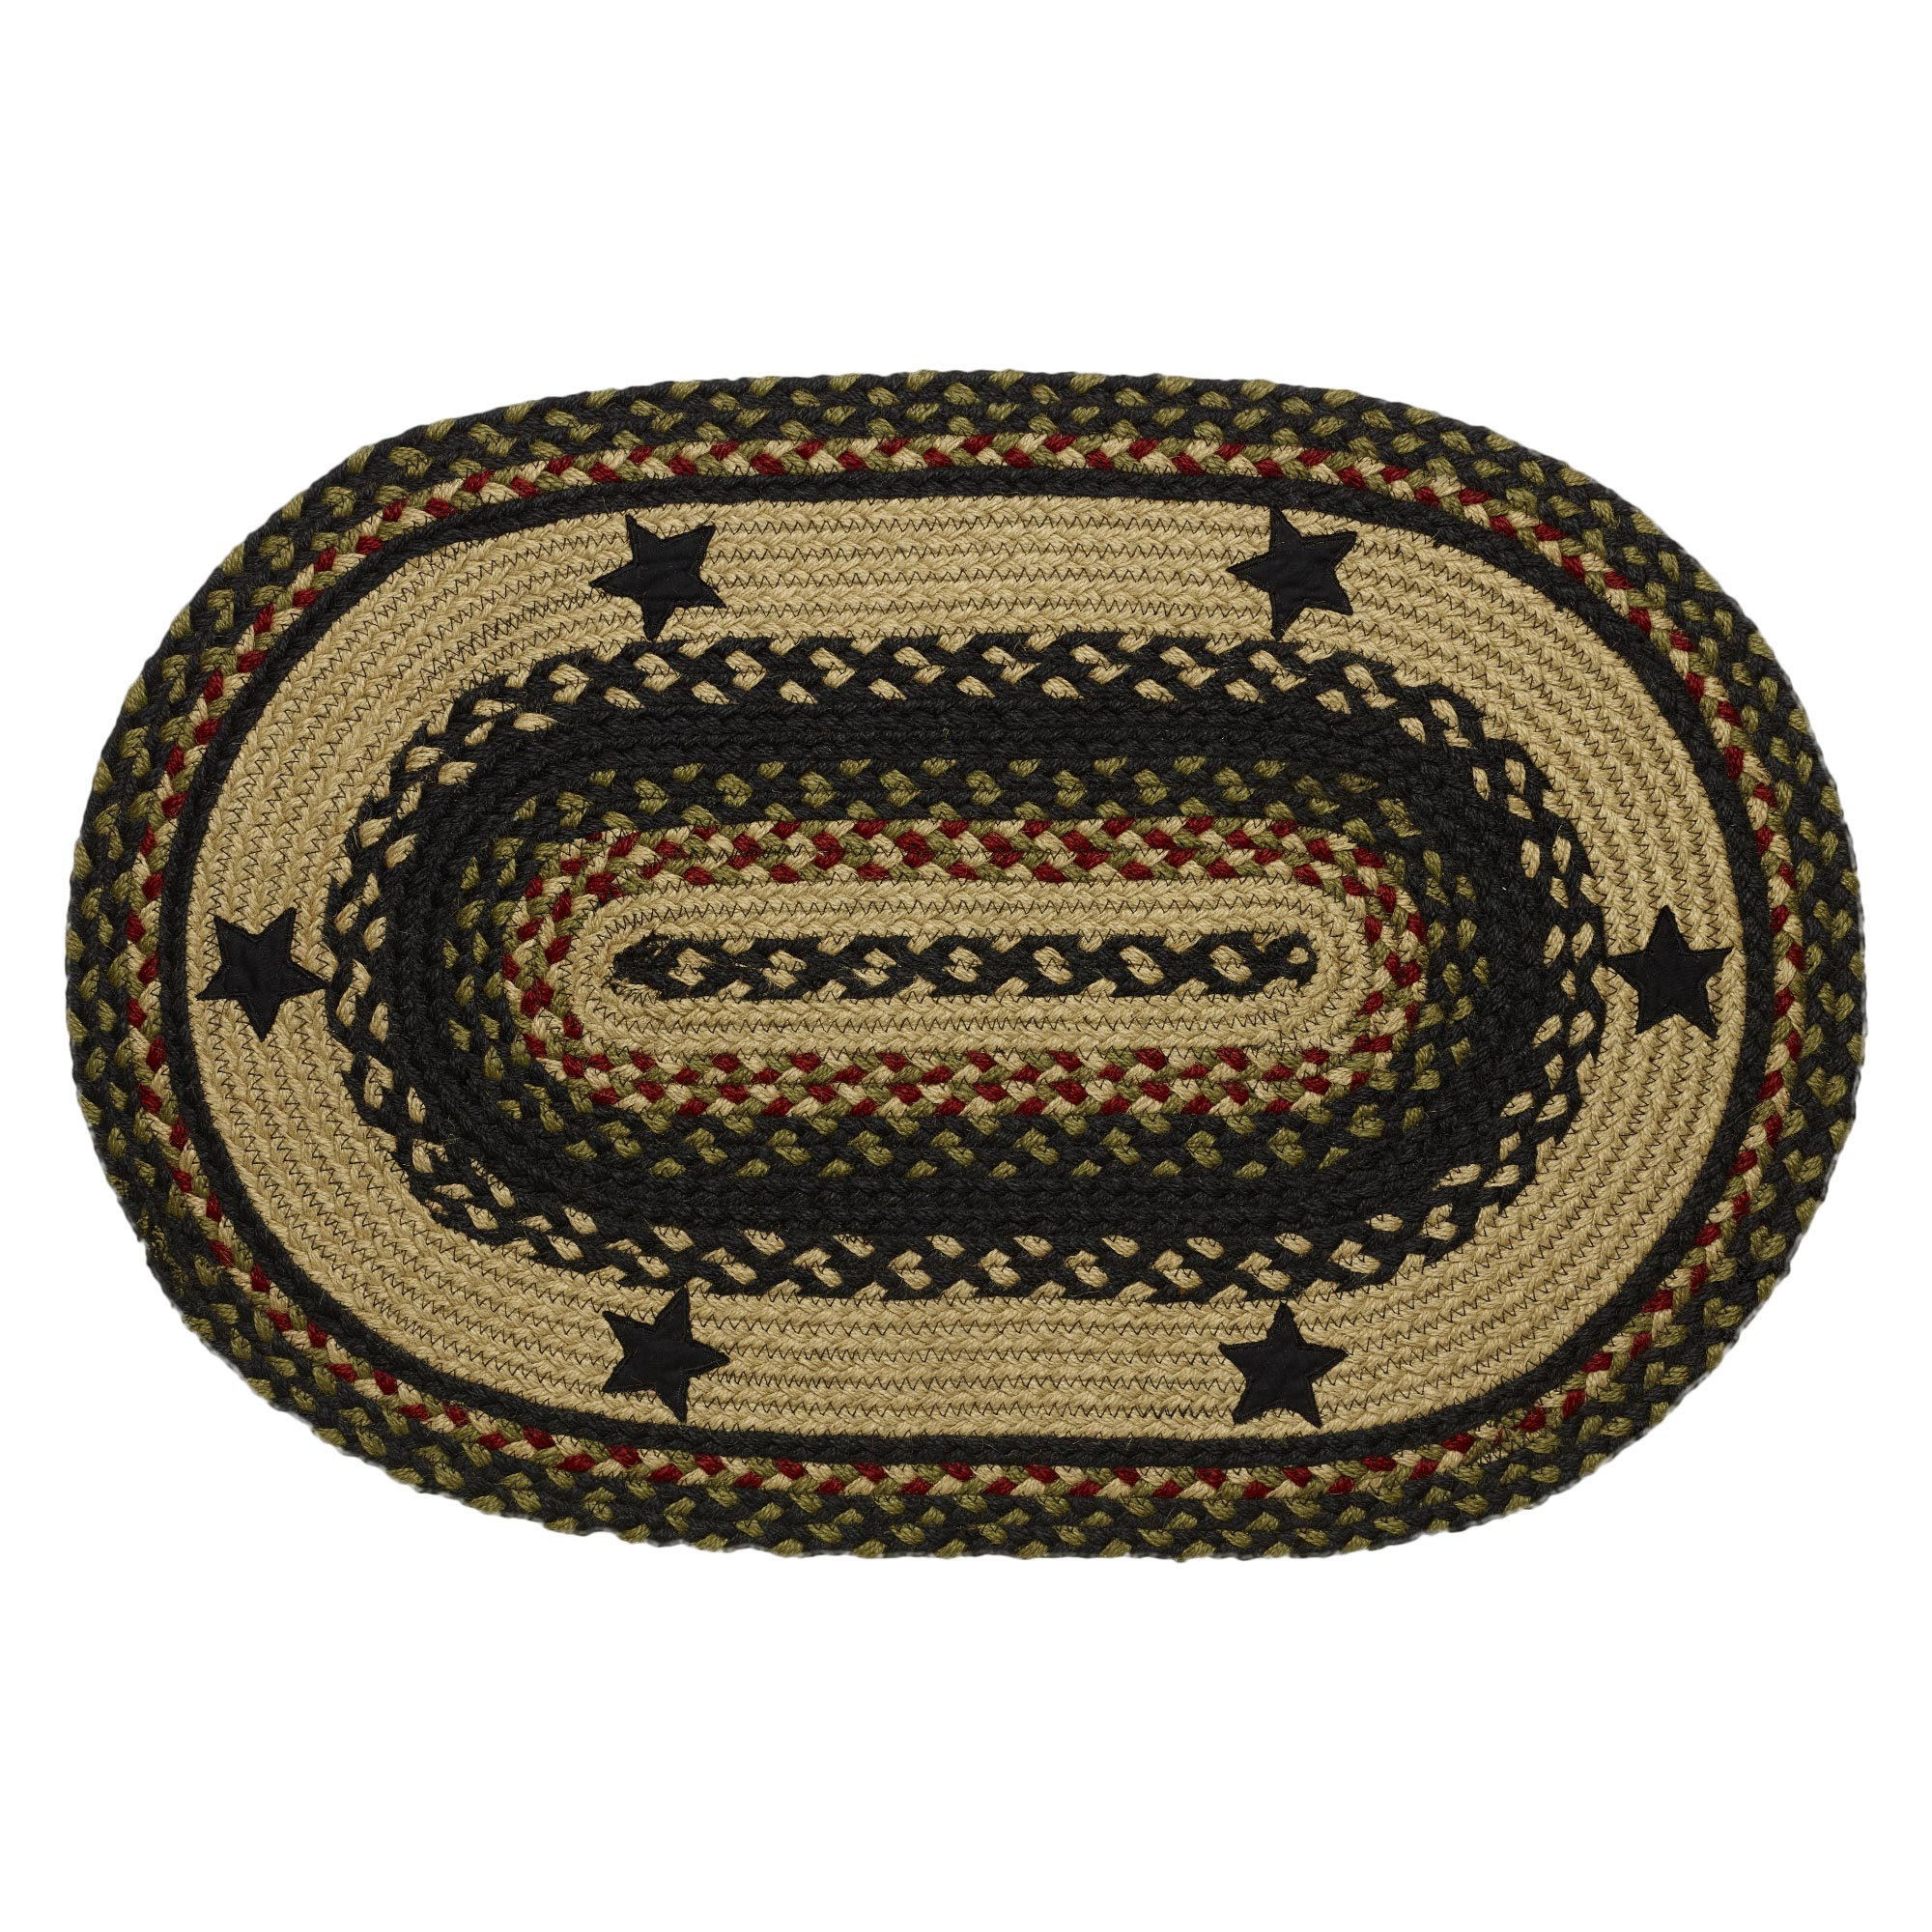 Braided Rugs: Braided Rug Tartan Star Jute Country Primitive IHF